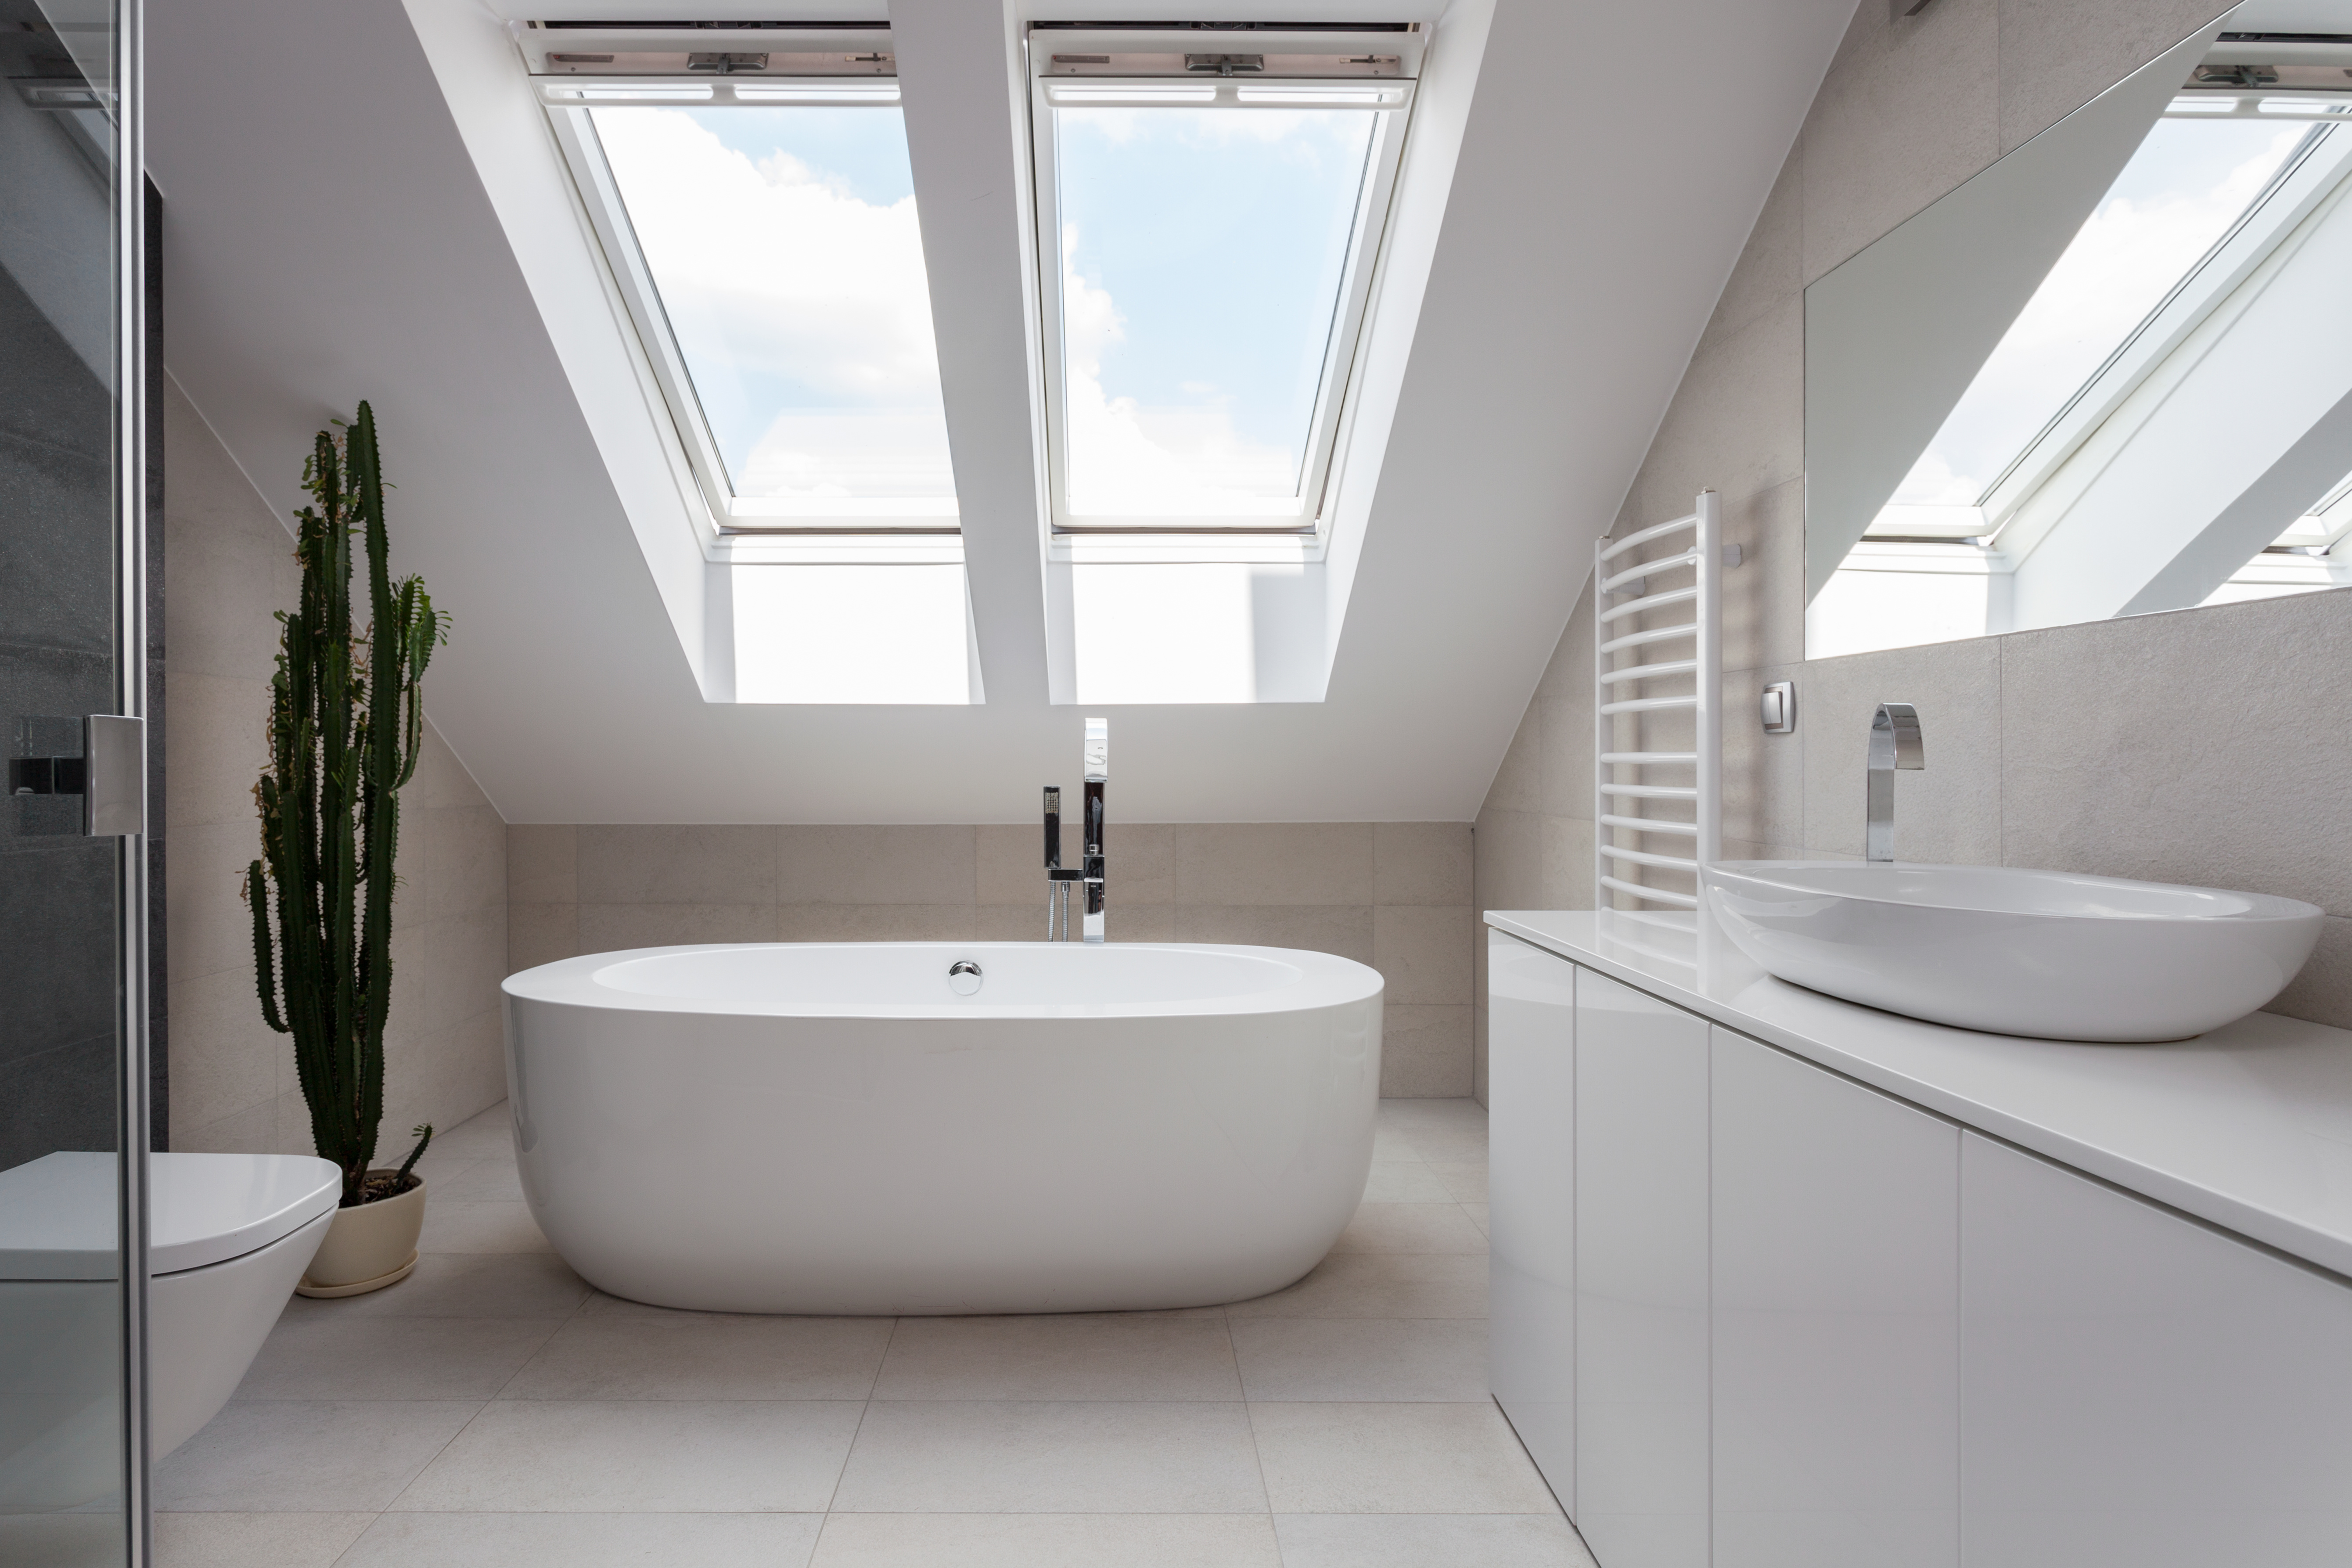 If you recently installed energy-saving features such as a skylight in your bathroom, you should ask your tax preparer if there are tax benefits for you.